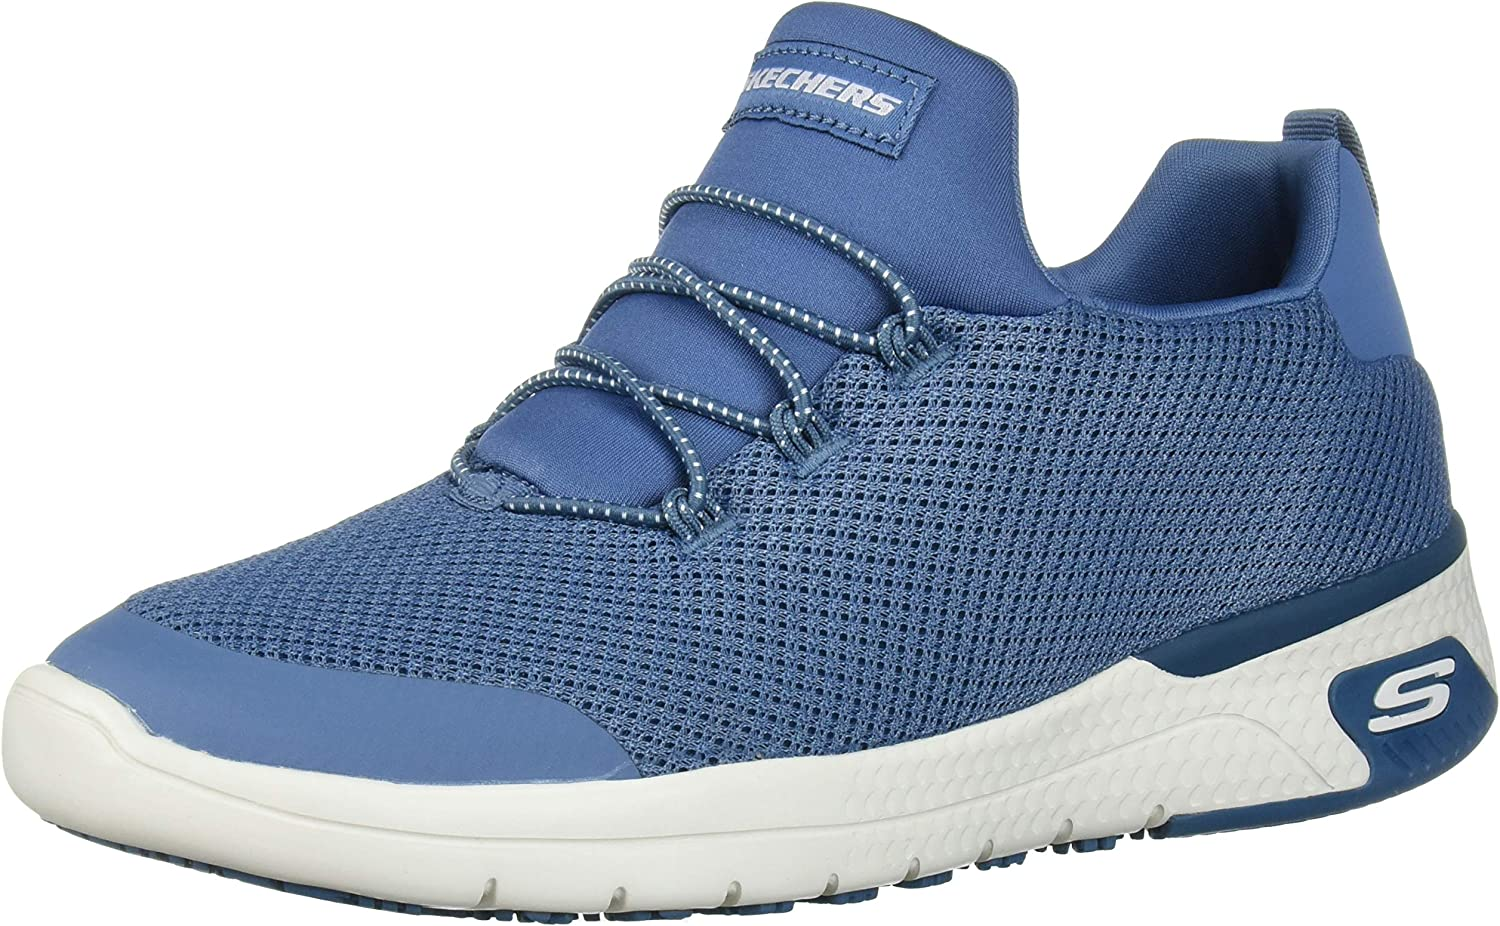 Skechers Women's Marsing-waiola We OFFer at cheap prices Health Care Complete Free Shipping Professional Shoe